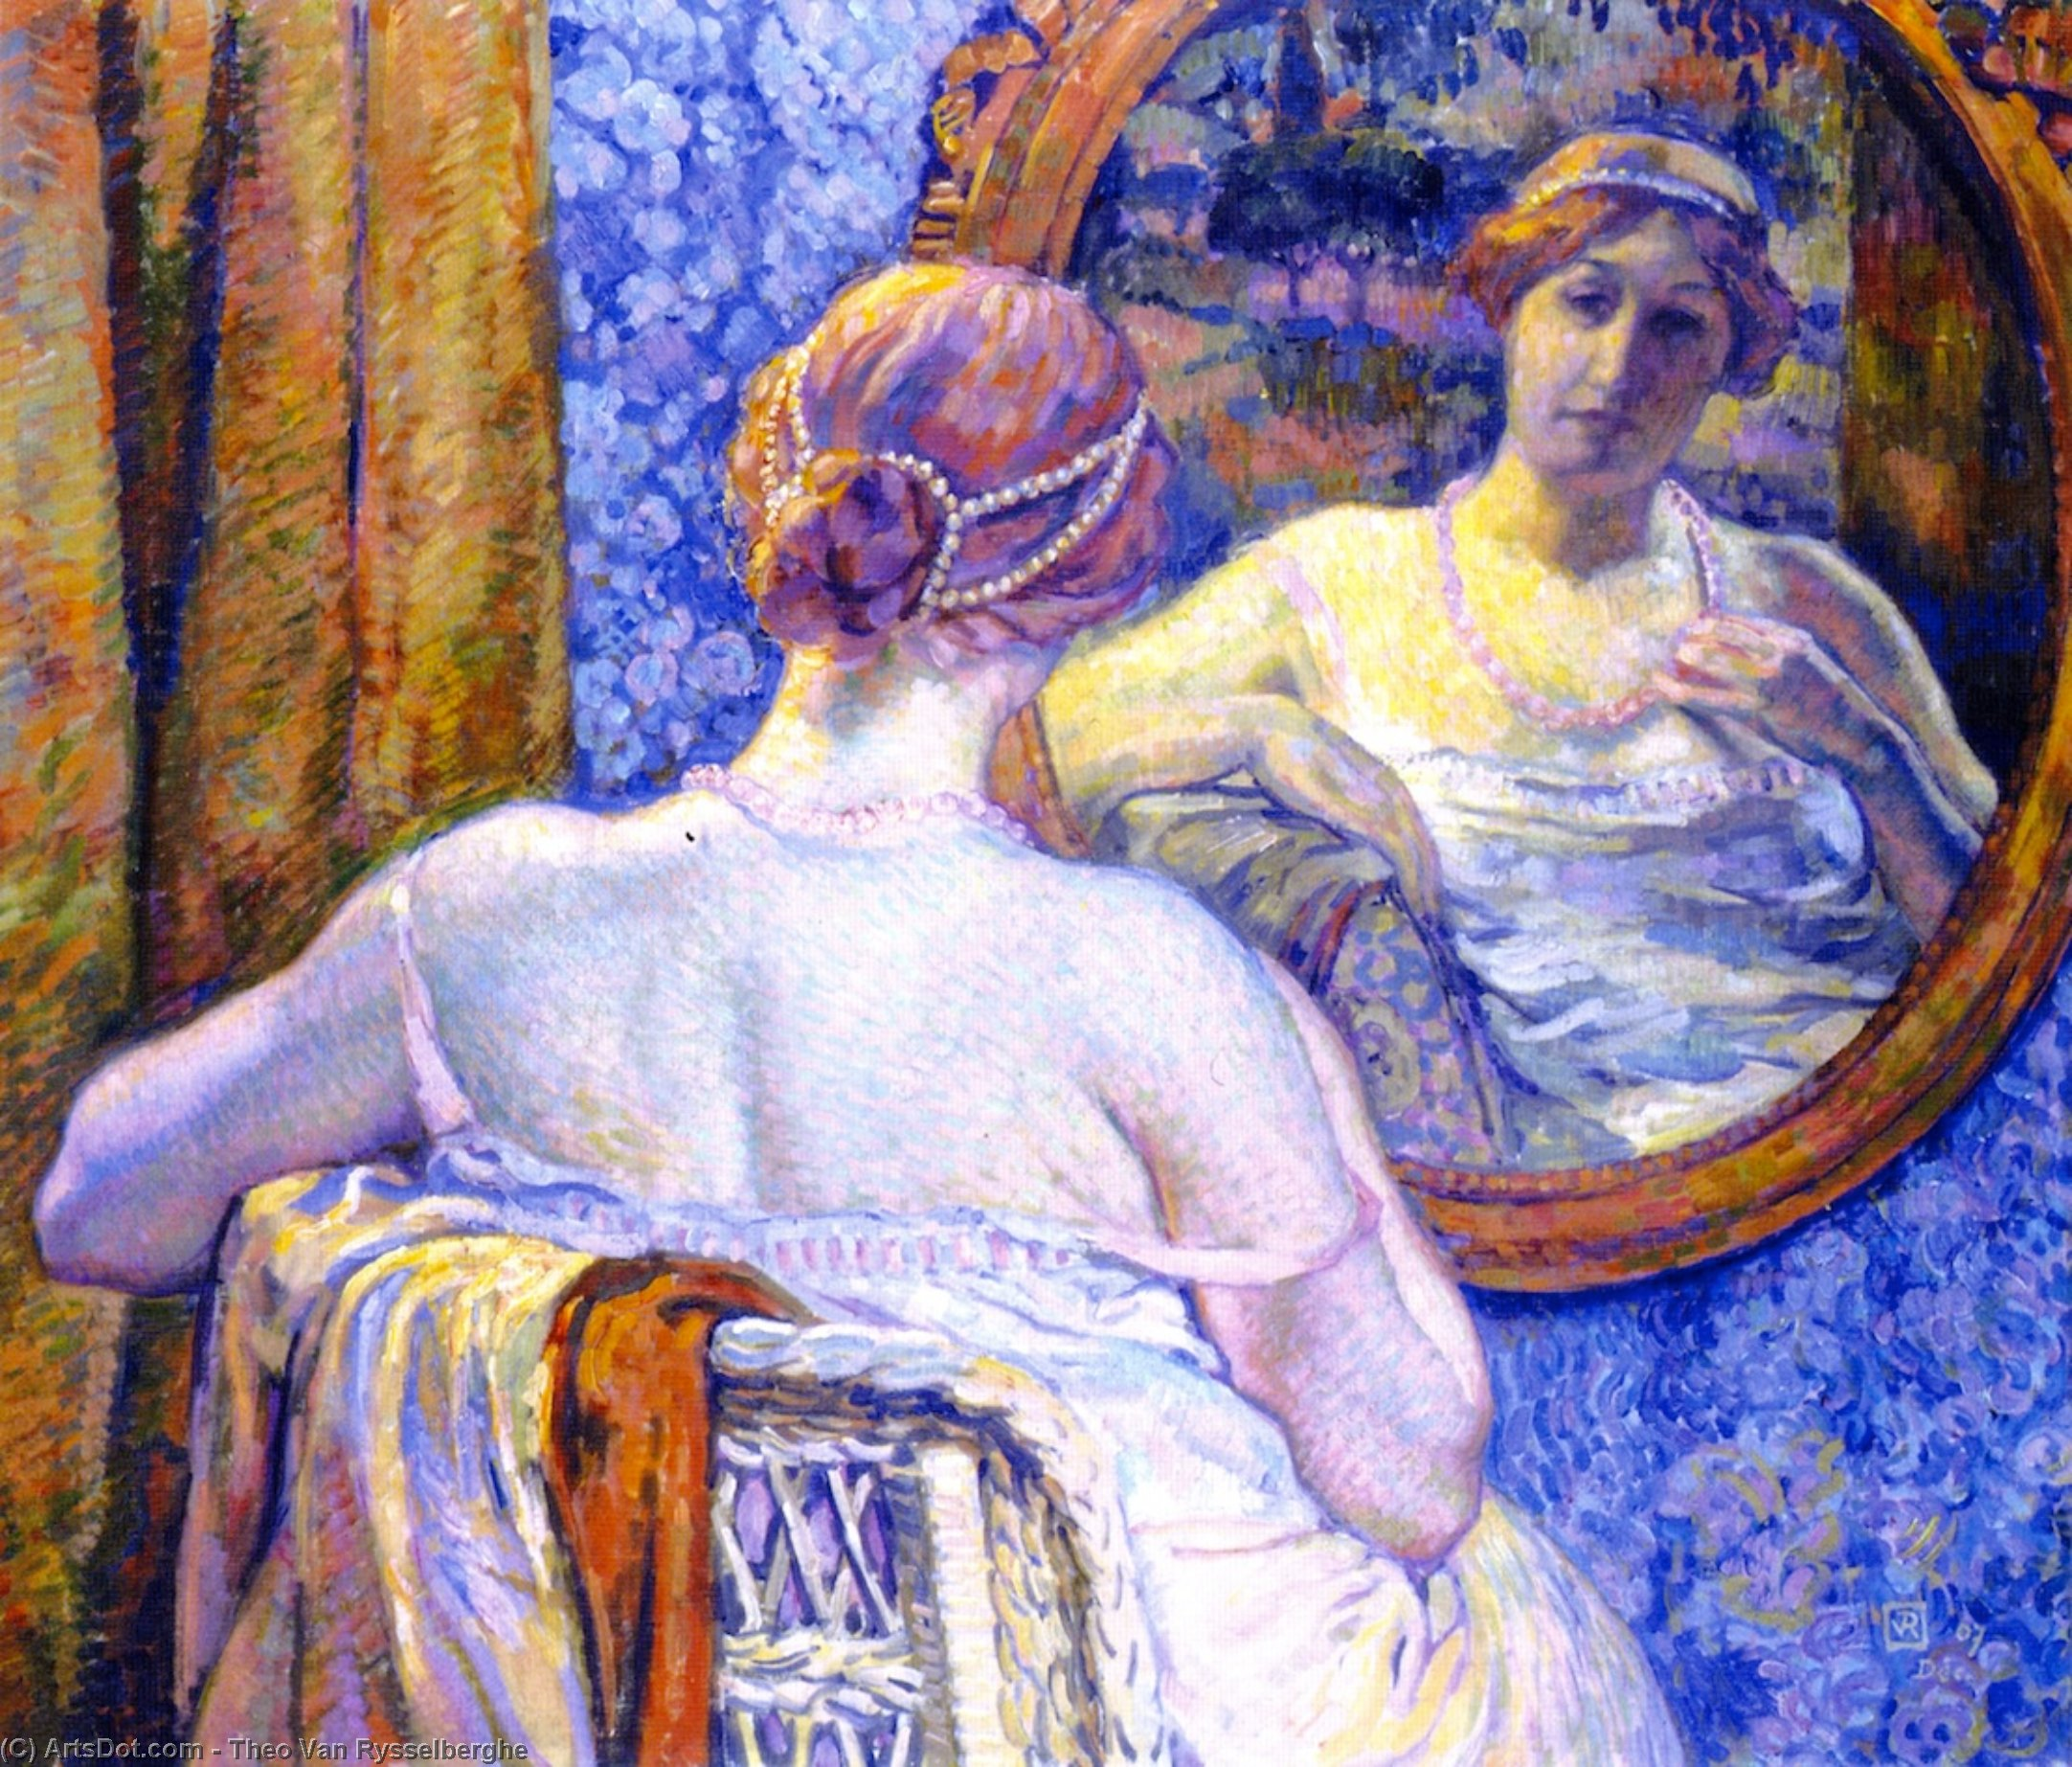 Woman with Red Necklace (also known as La femme au collier rose), 1907 by Theo Van Rysselberghe (1862-1926, Belgium) | ArtsDot.com